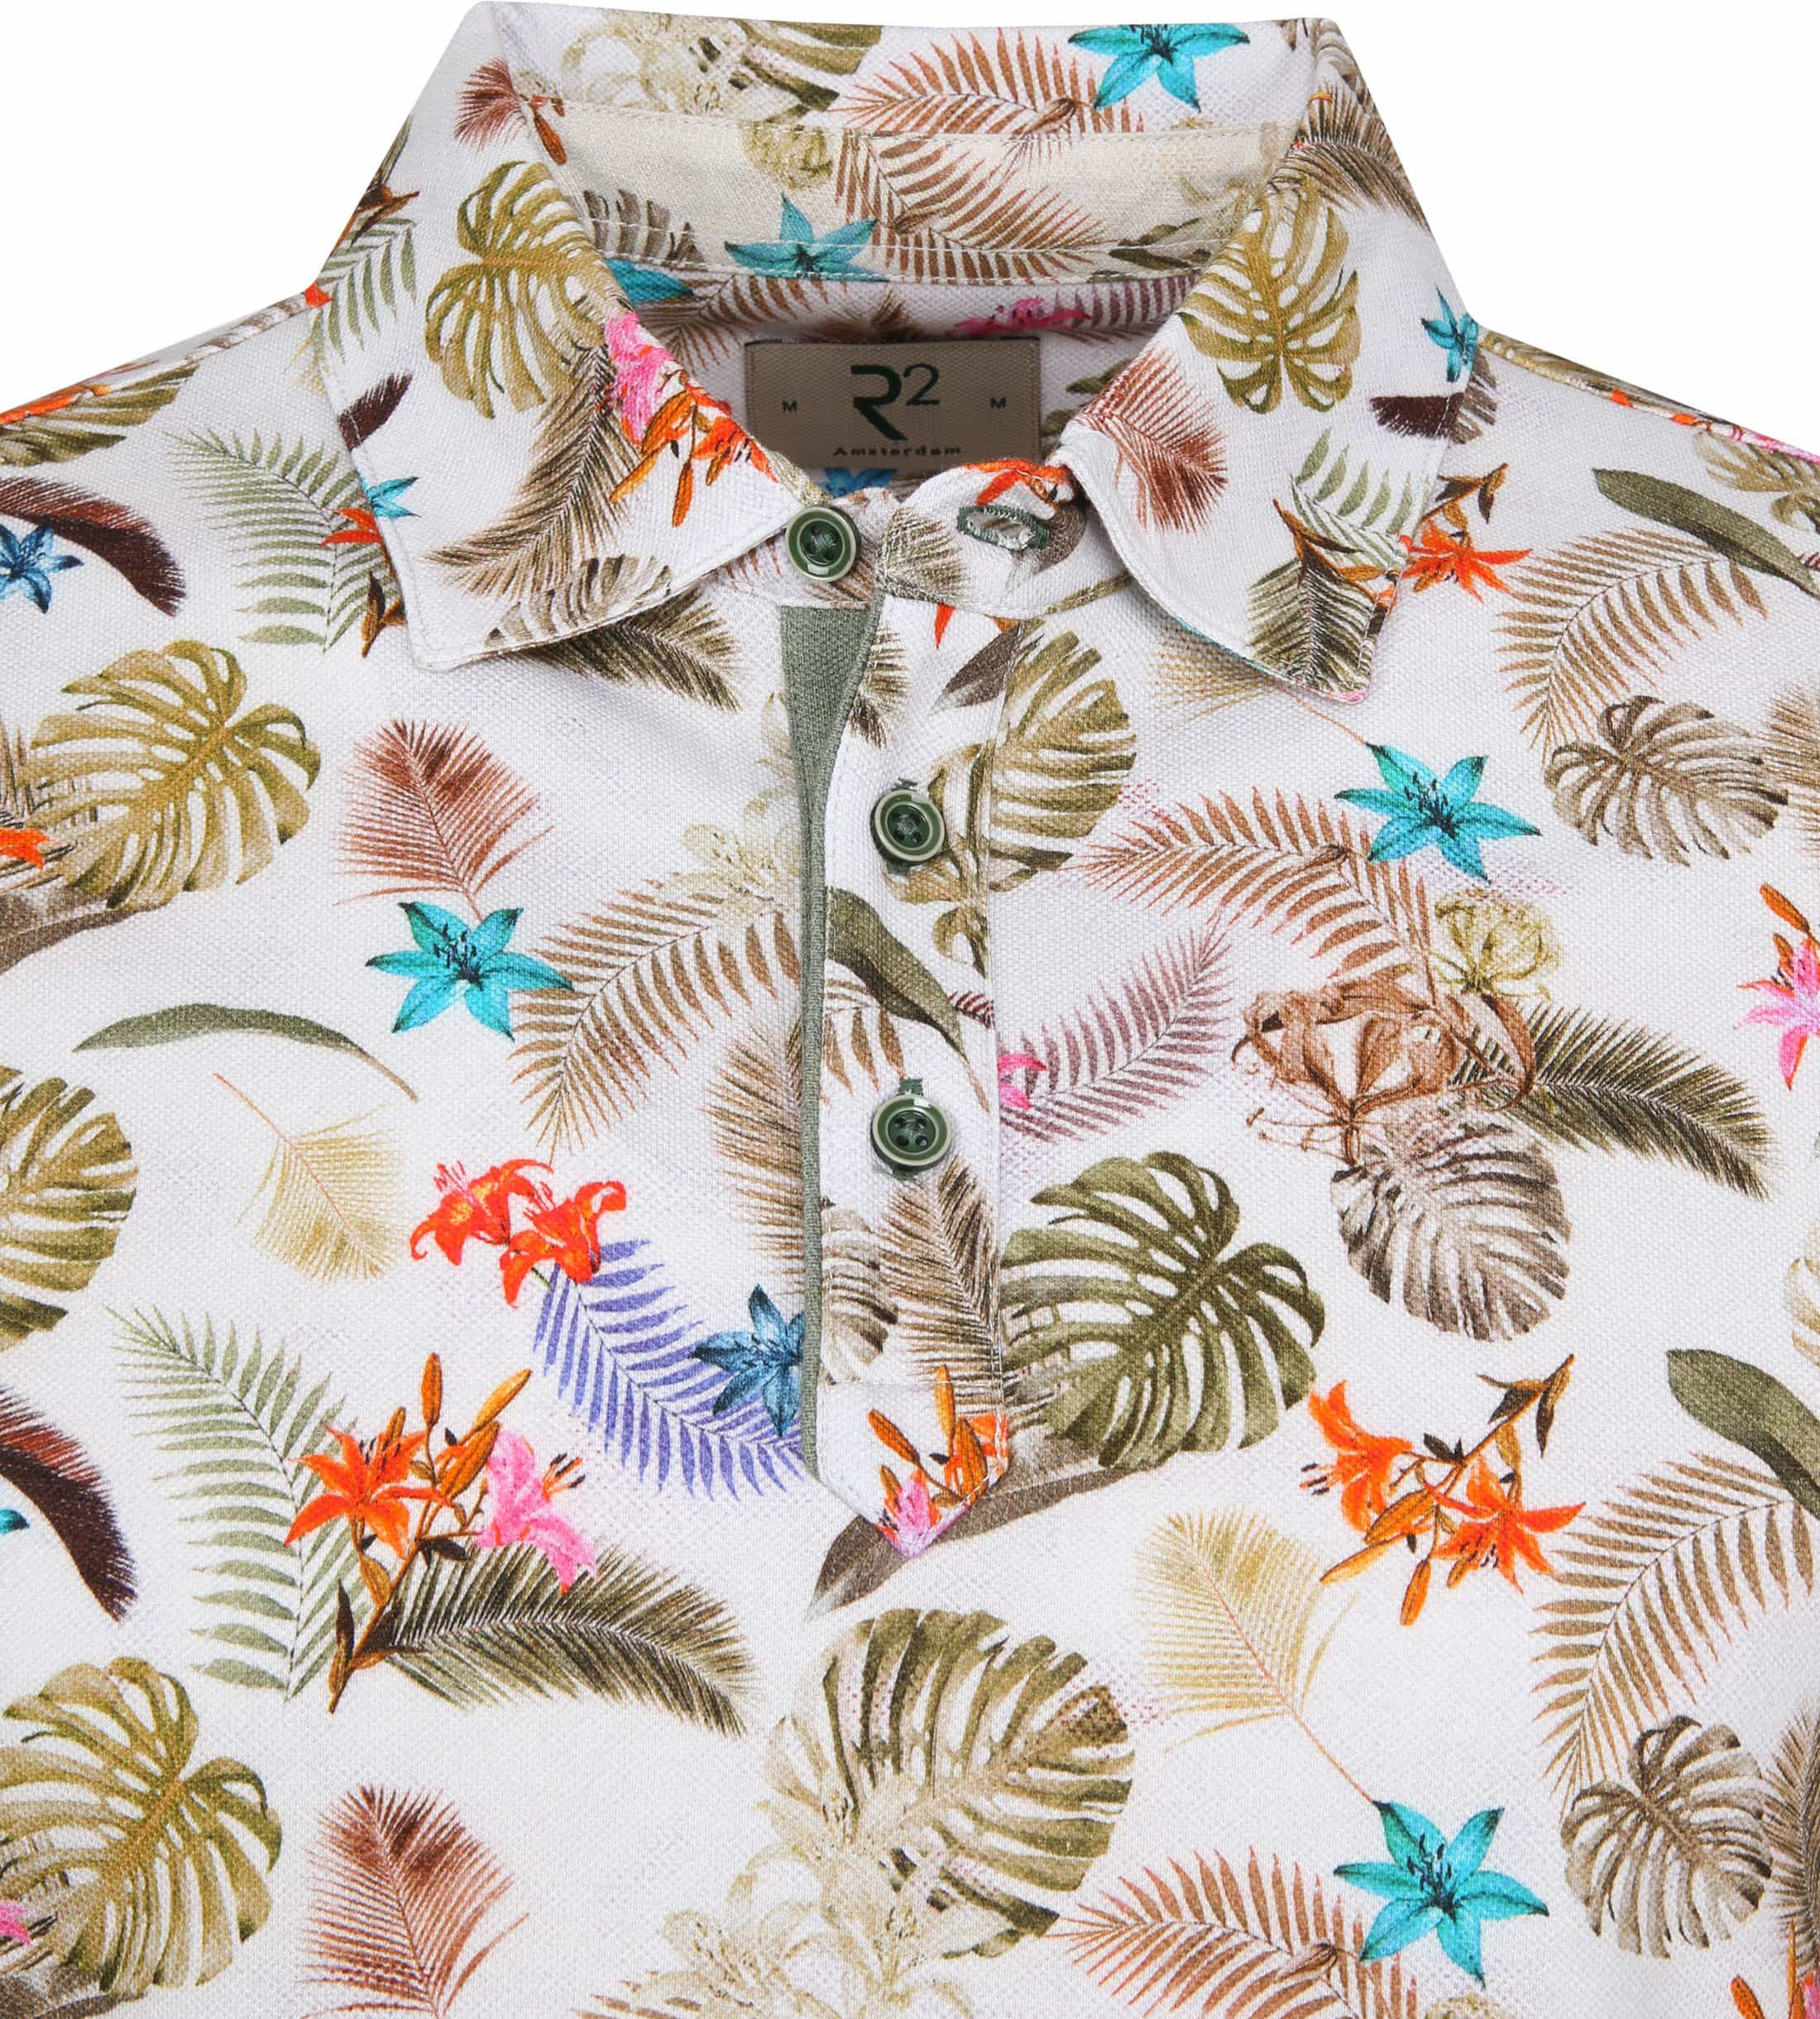 R2 Poloshirt Piquet Multicolour  Jungle foto 1